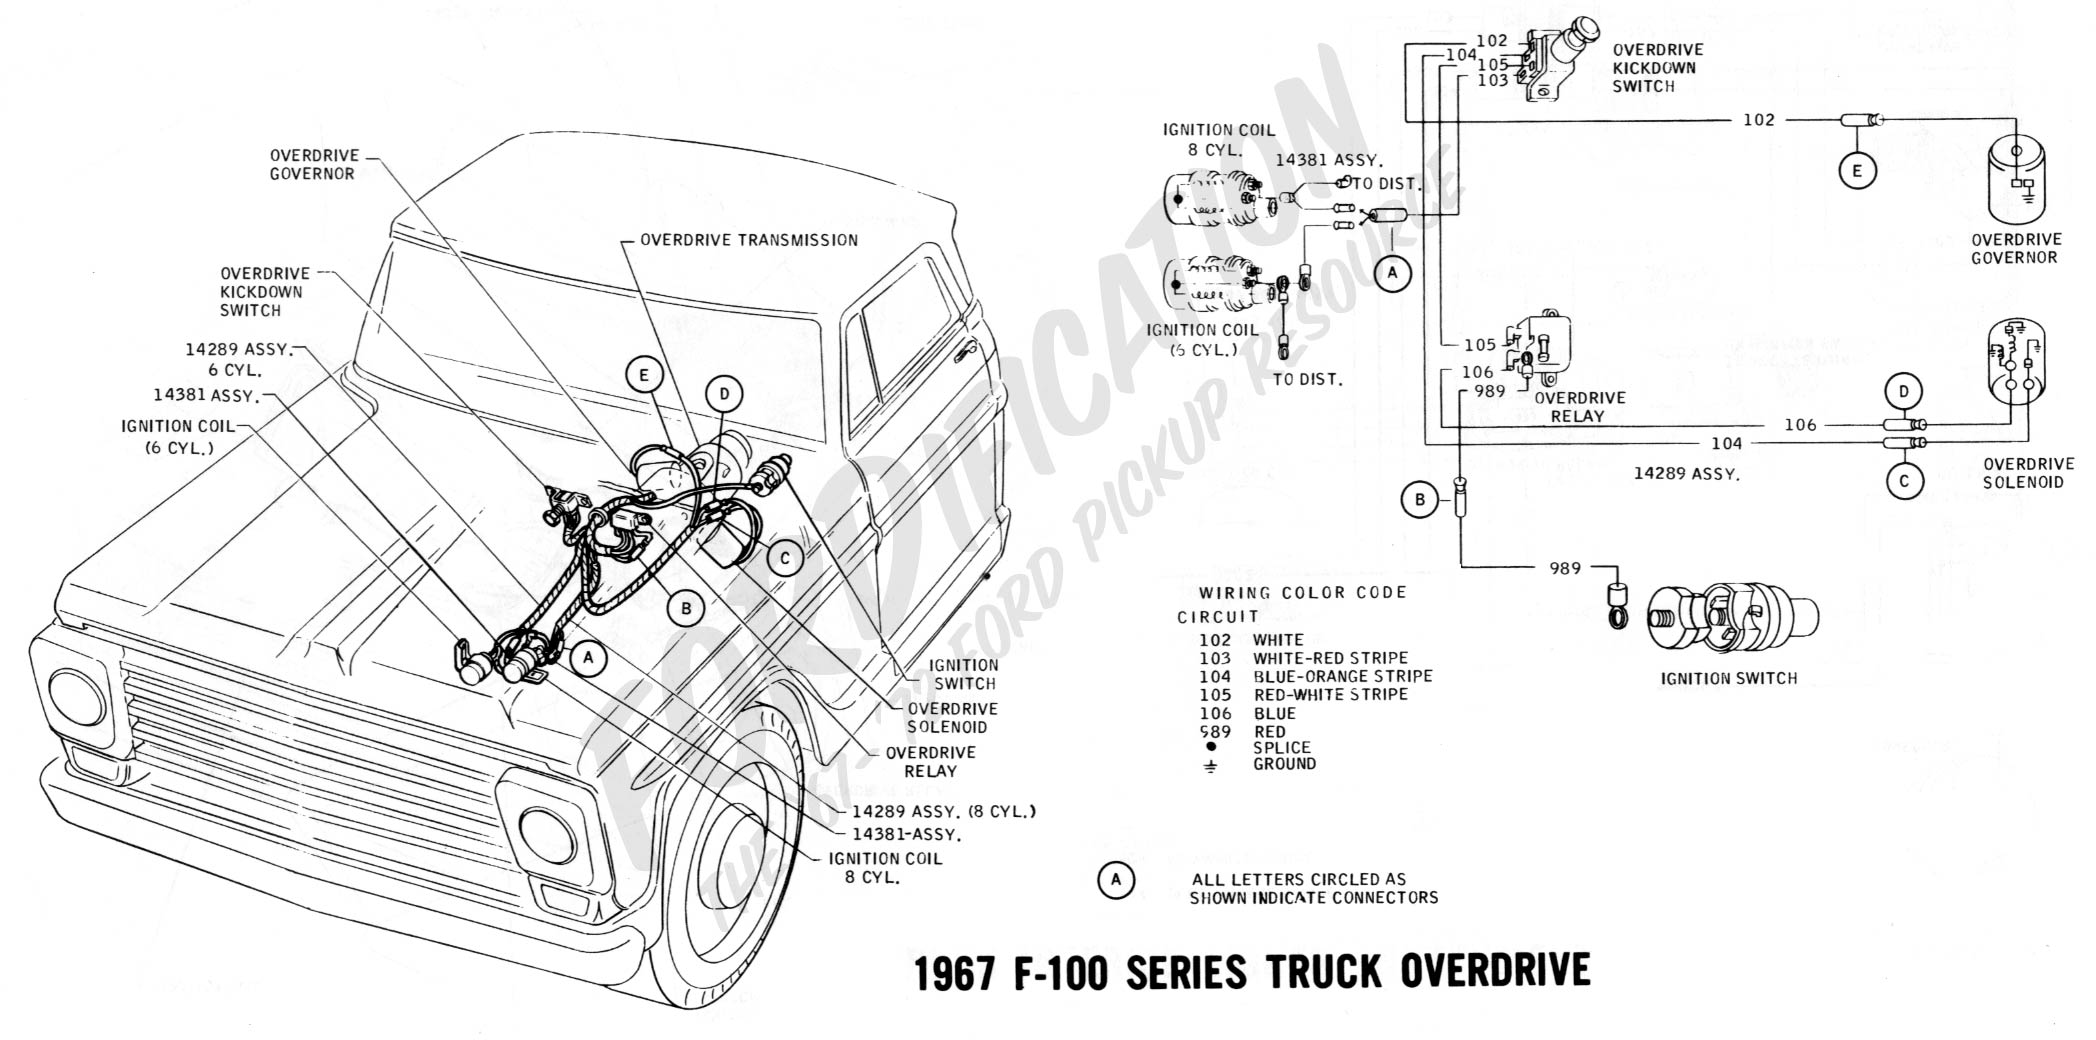 1971 Ford Truck Wiring Diagram Trusted Chevy Fuse Box Technical Drawings And Schematics Section H Bronco